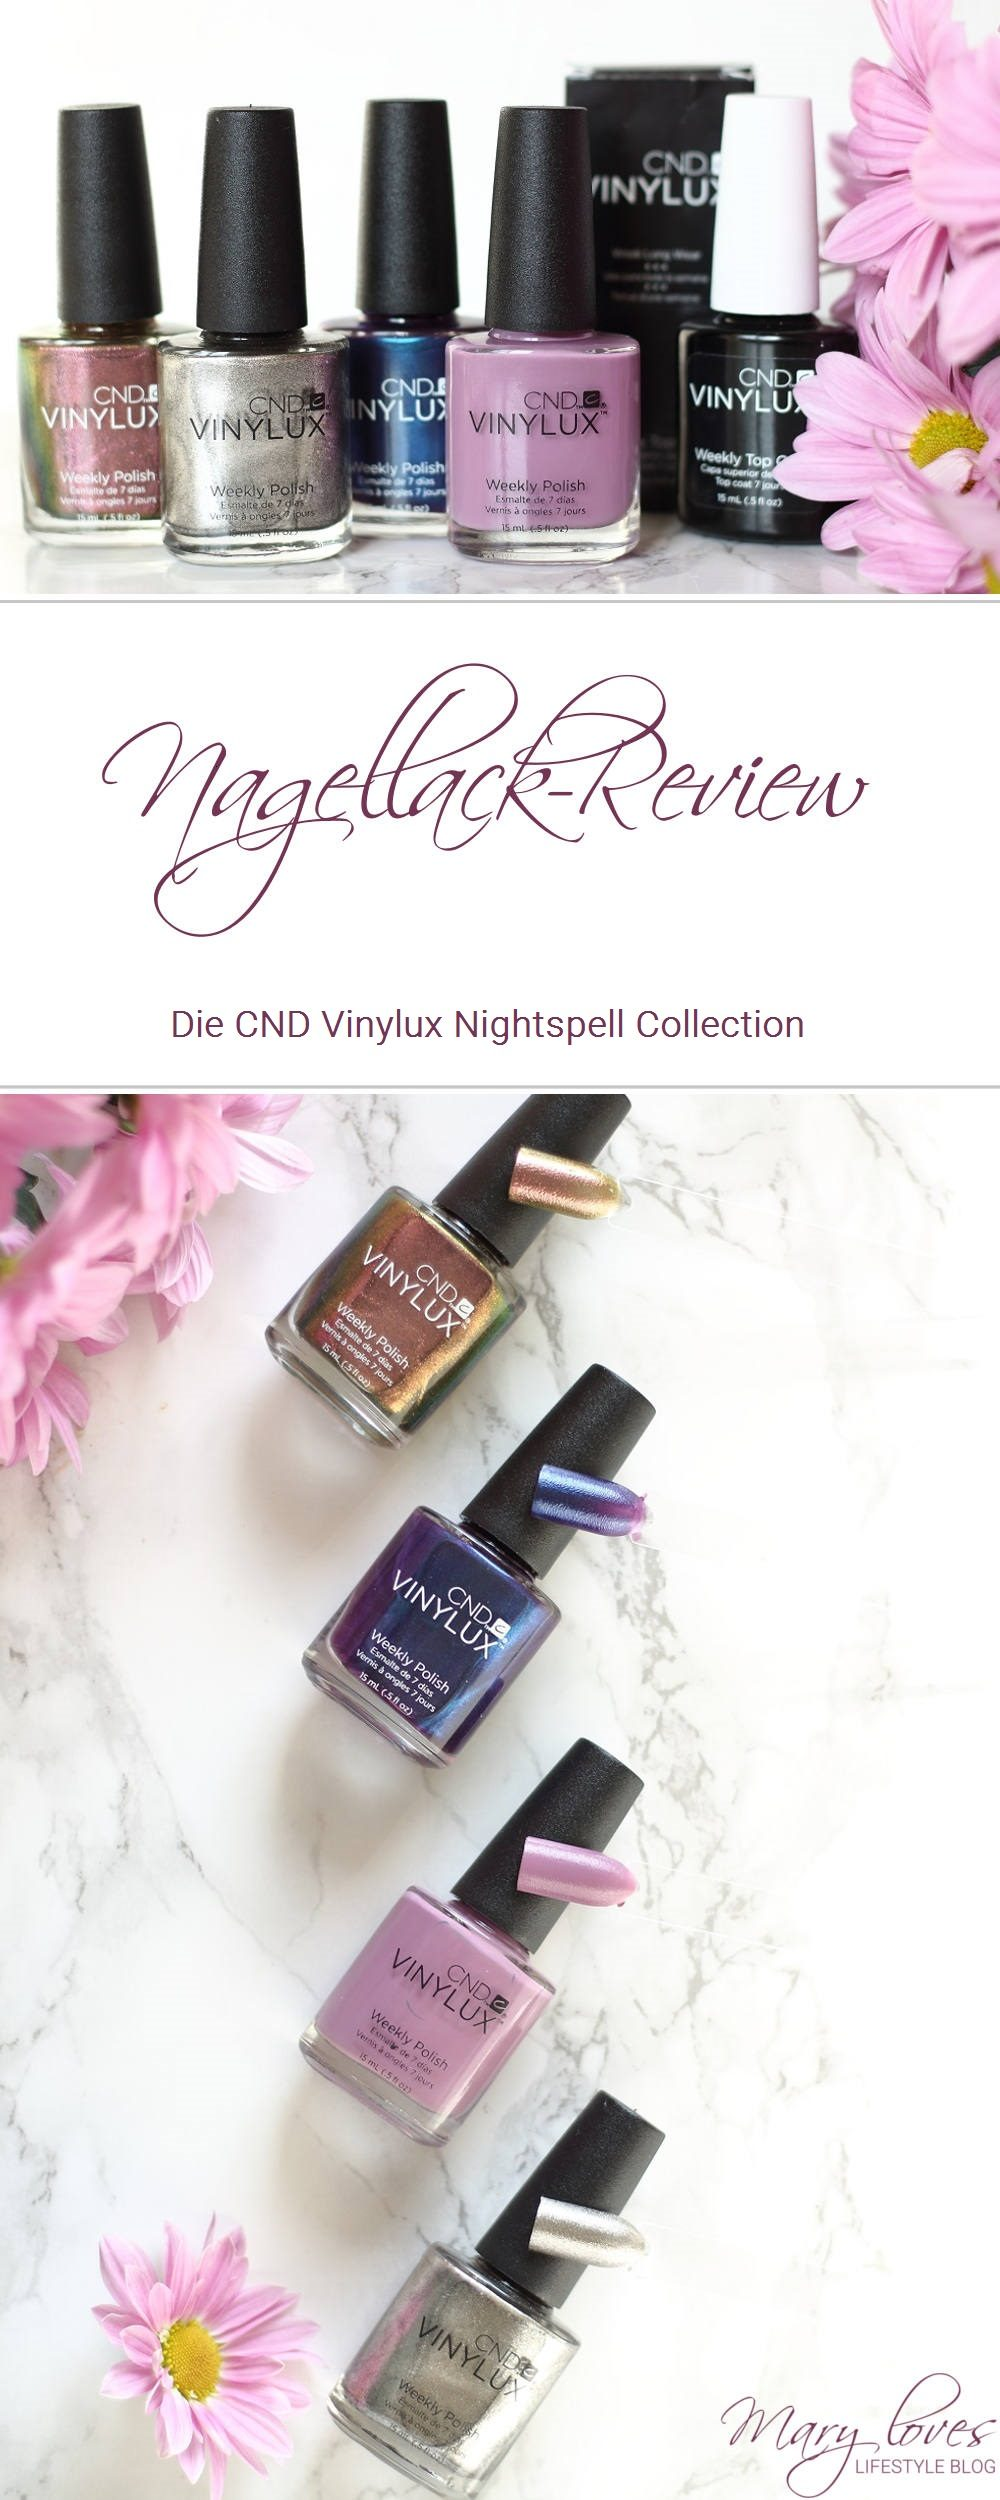 [Anzeige - Produktplatzierung] CND Vinylux Nightspell Collection - Nagellacke von CND - #CNDVinylux #nagellack #nailpolish #nightspellcollection #herbstnagellack